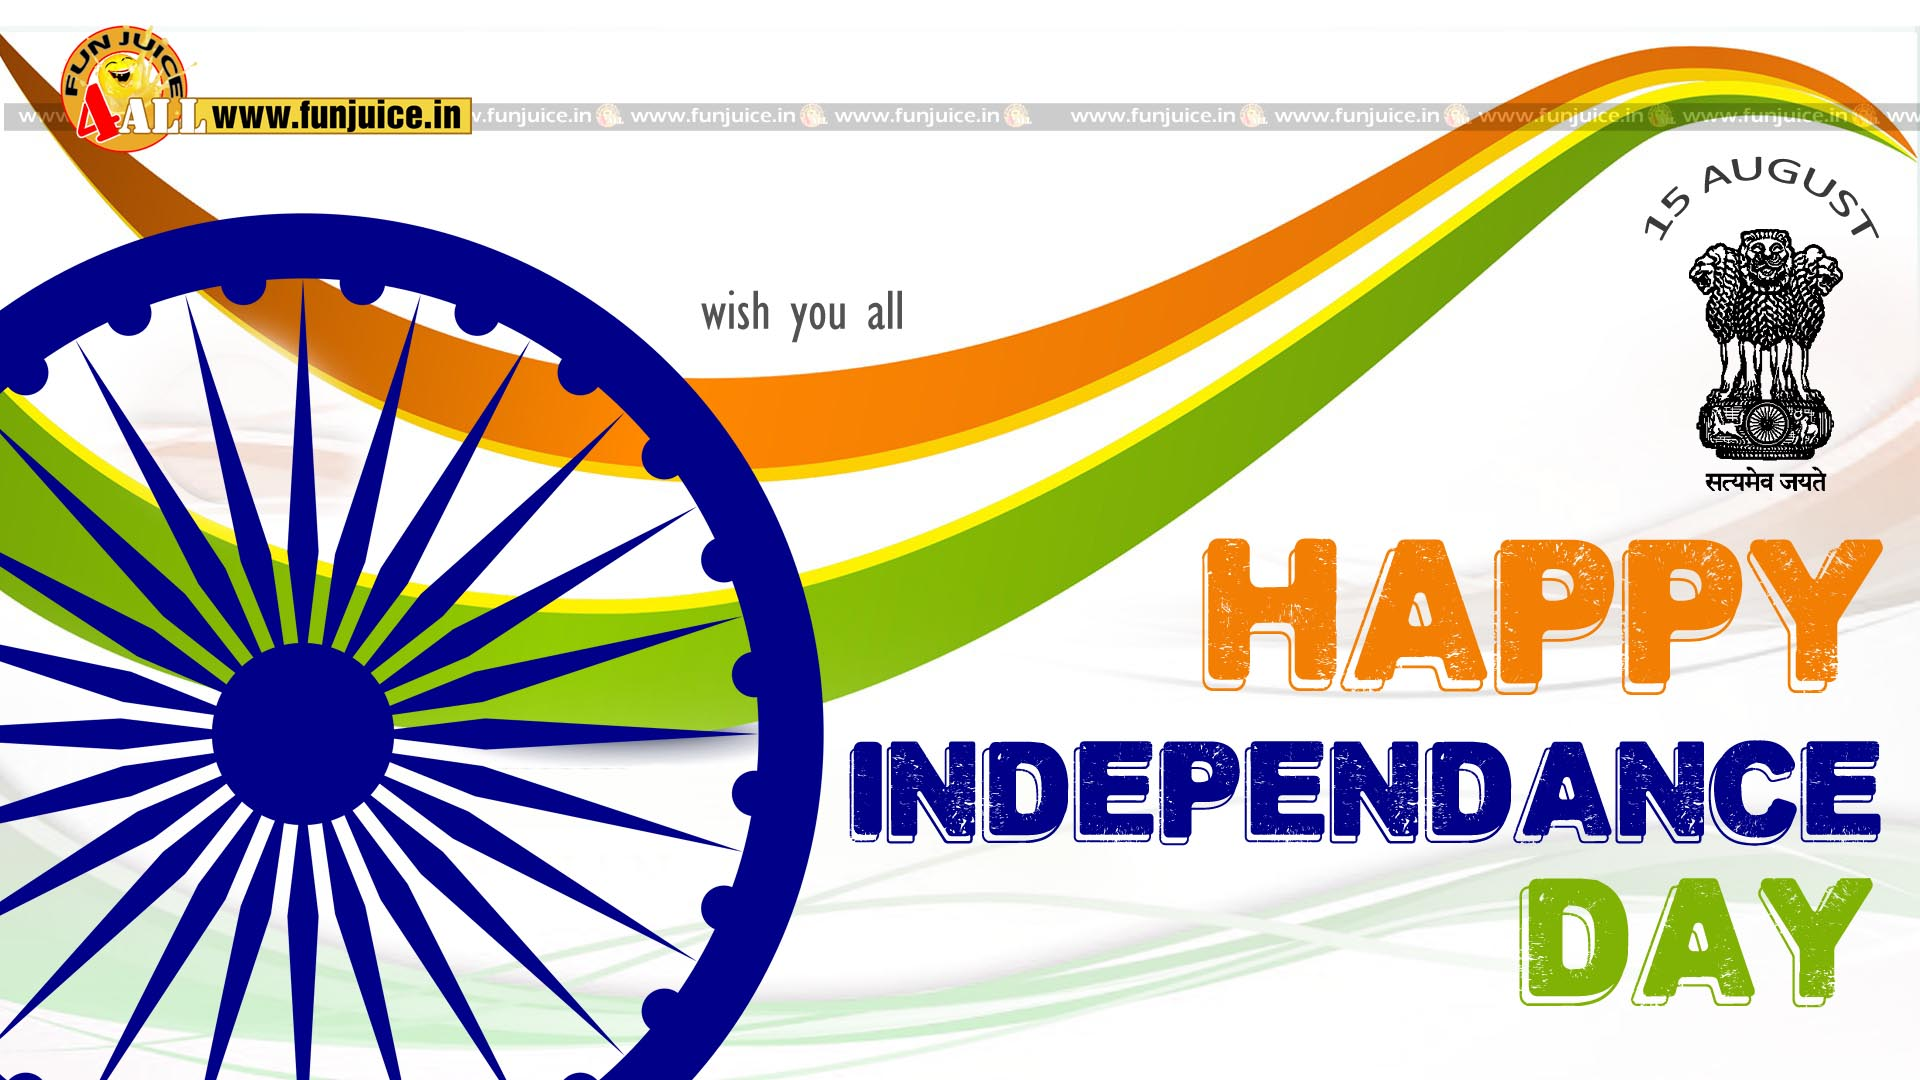 Simple Wallpaper Name Anil - Happy-Independence-Day_83020160755080614  Photograph_93861.jpg